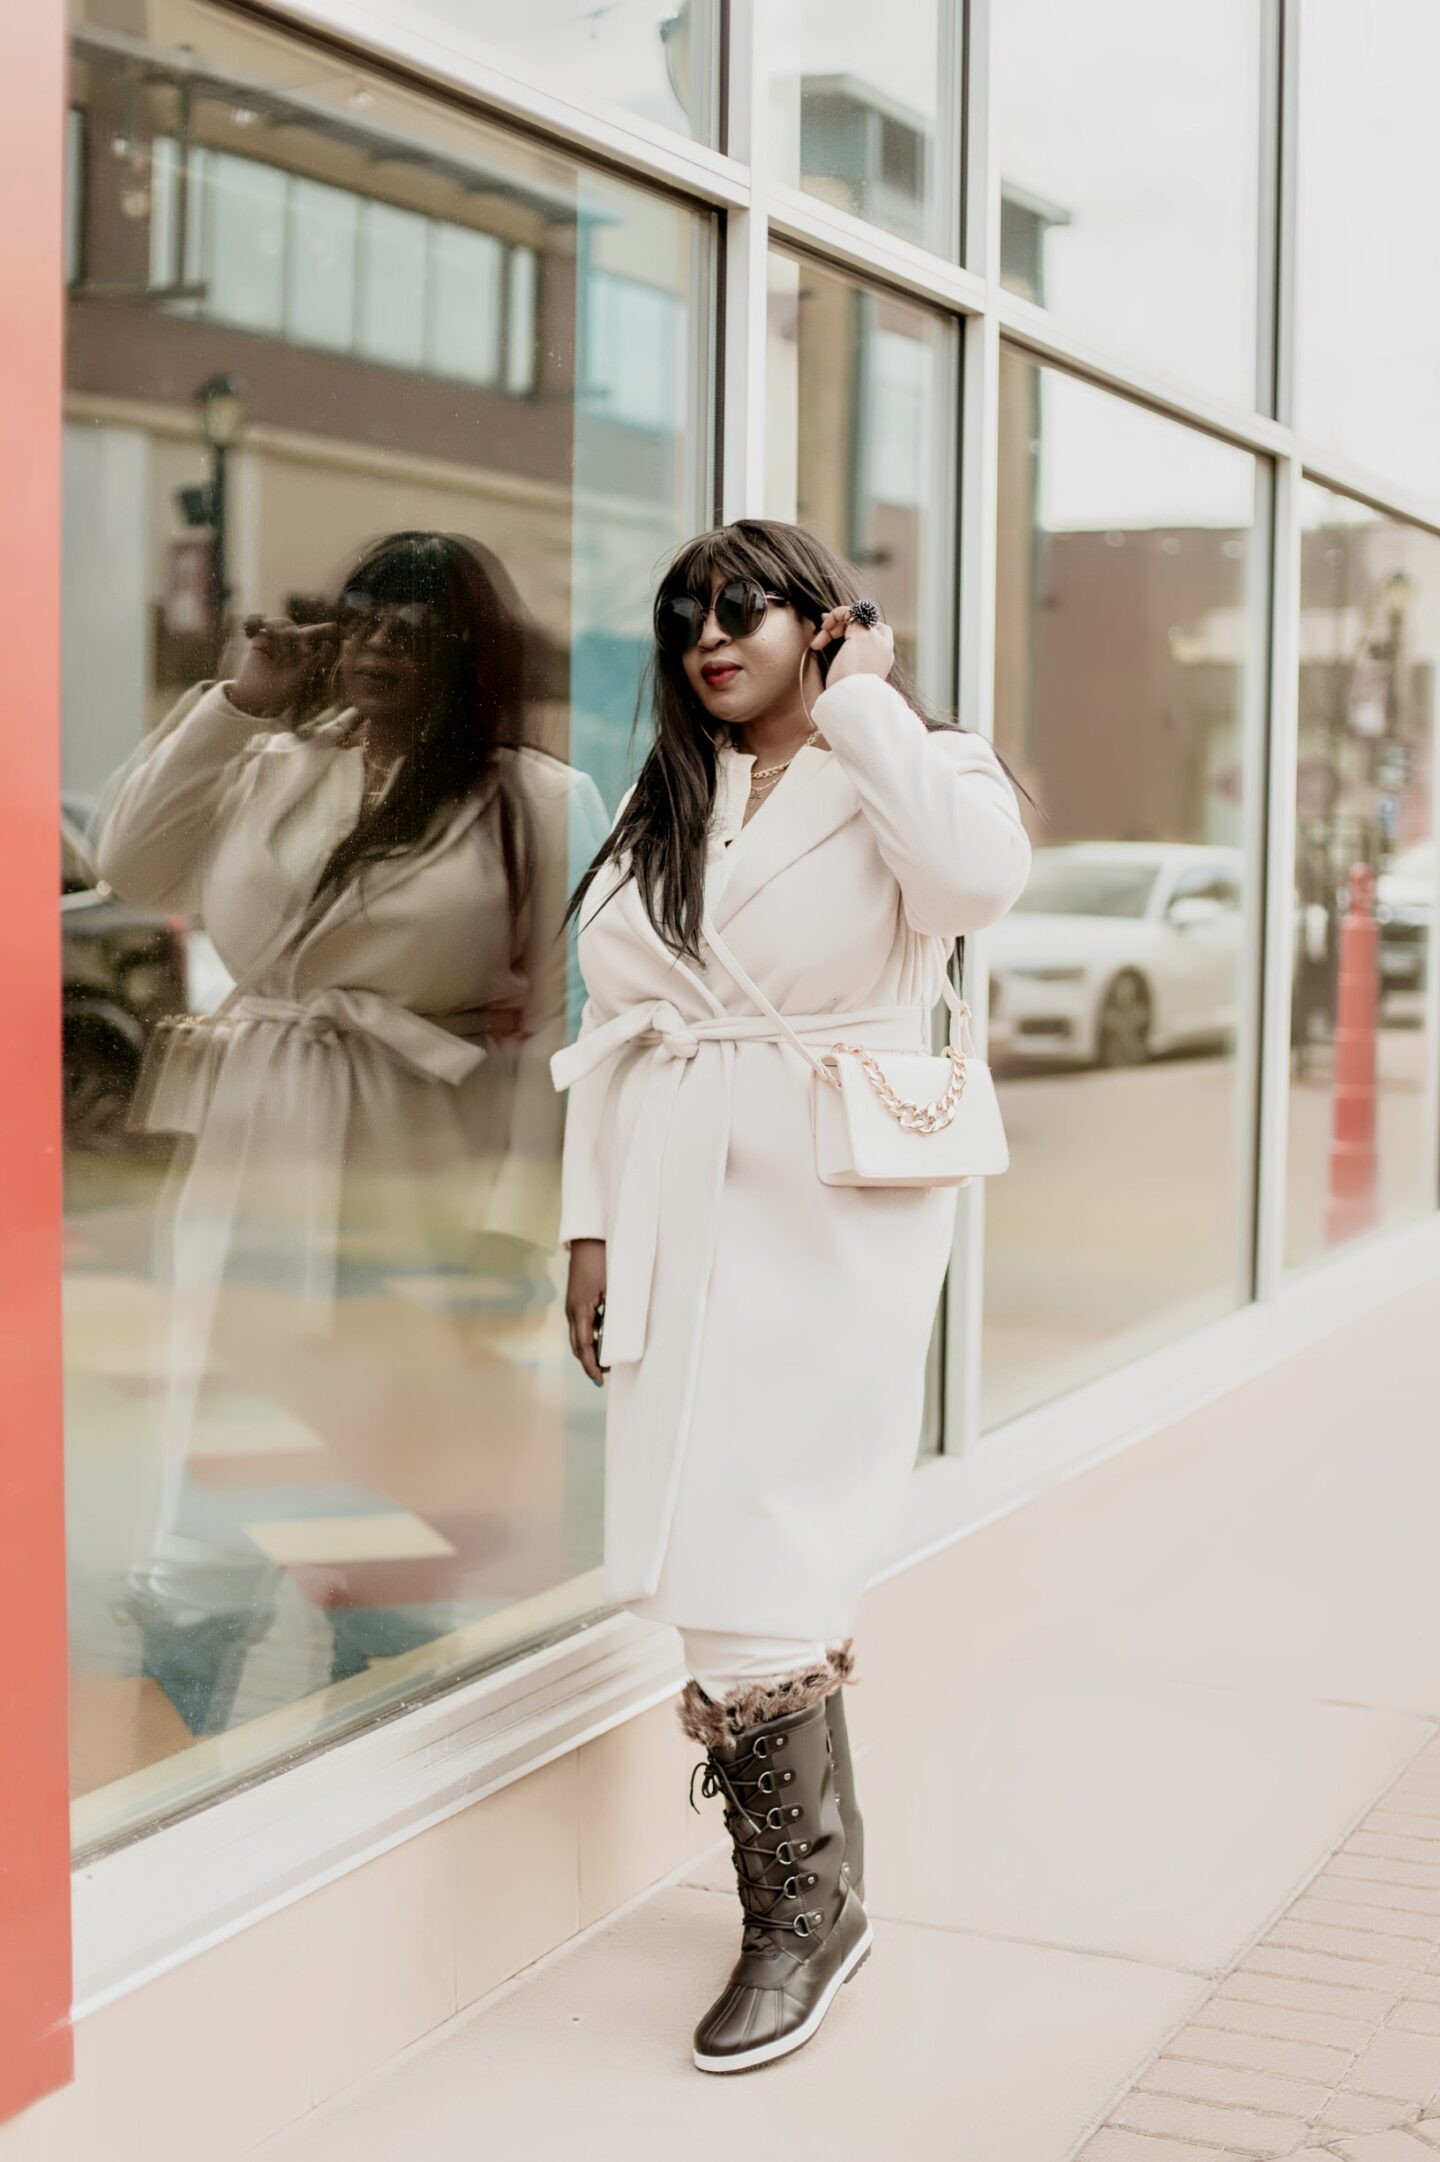 All-white-outfit-lounge-wear-white-coat-hypnozglam